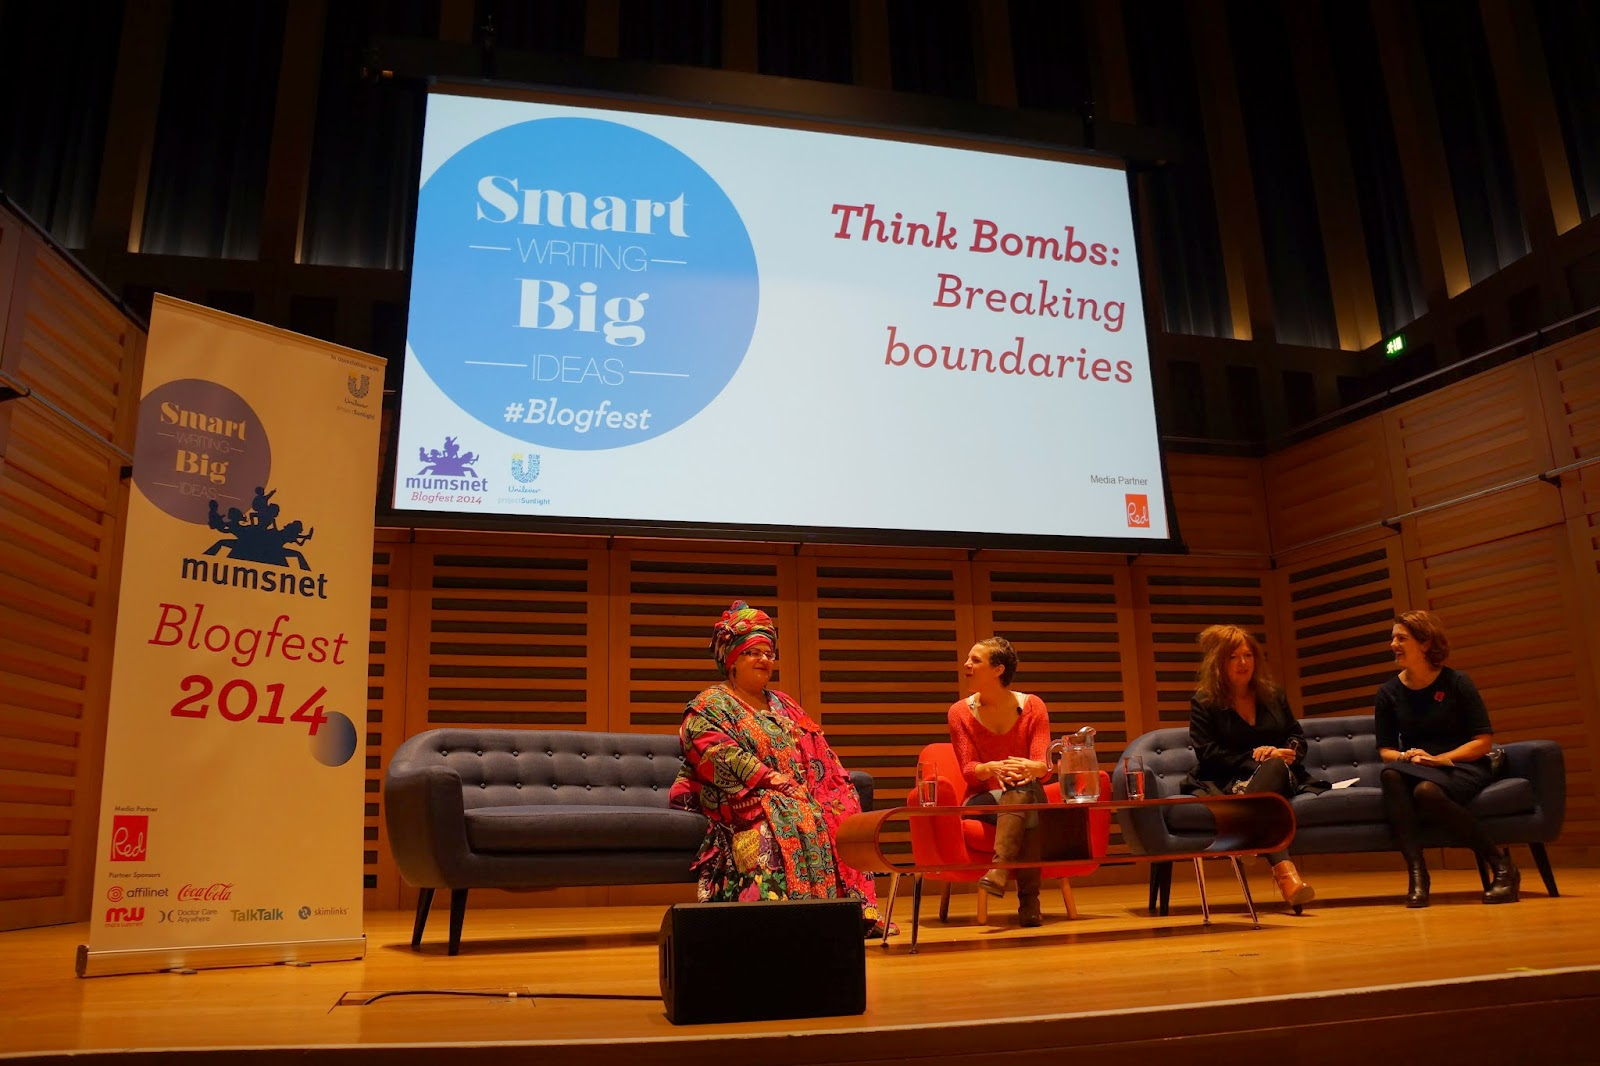 mumsnet blogfest 2014 think bombs